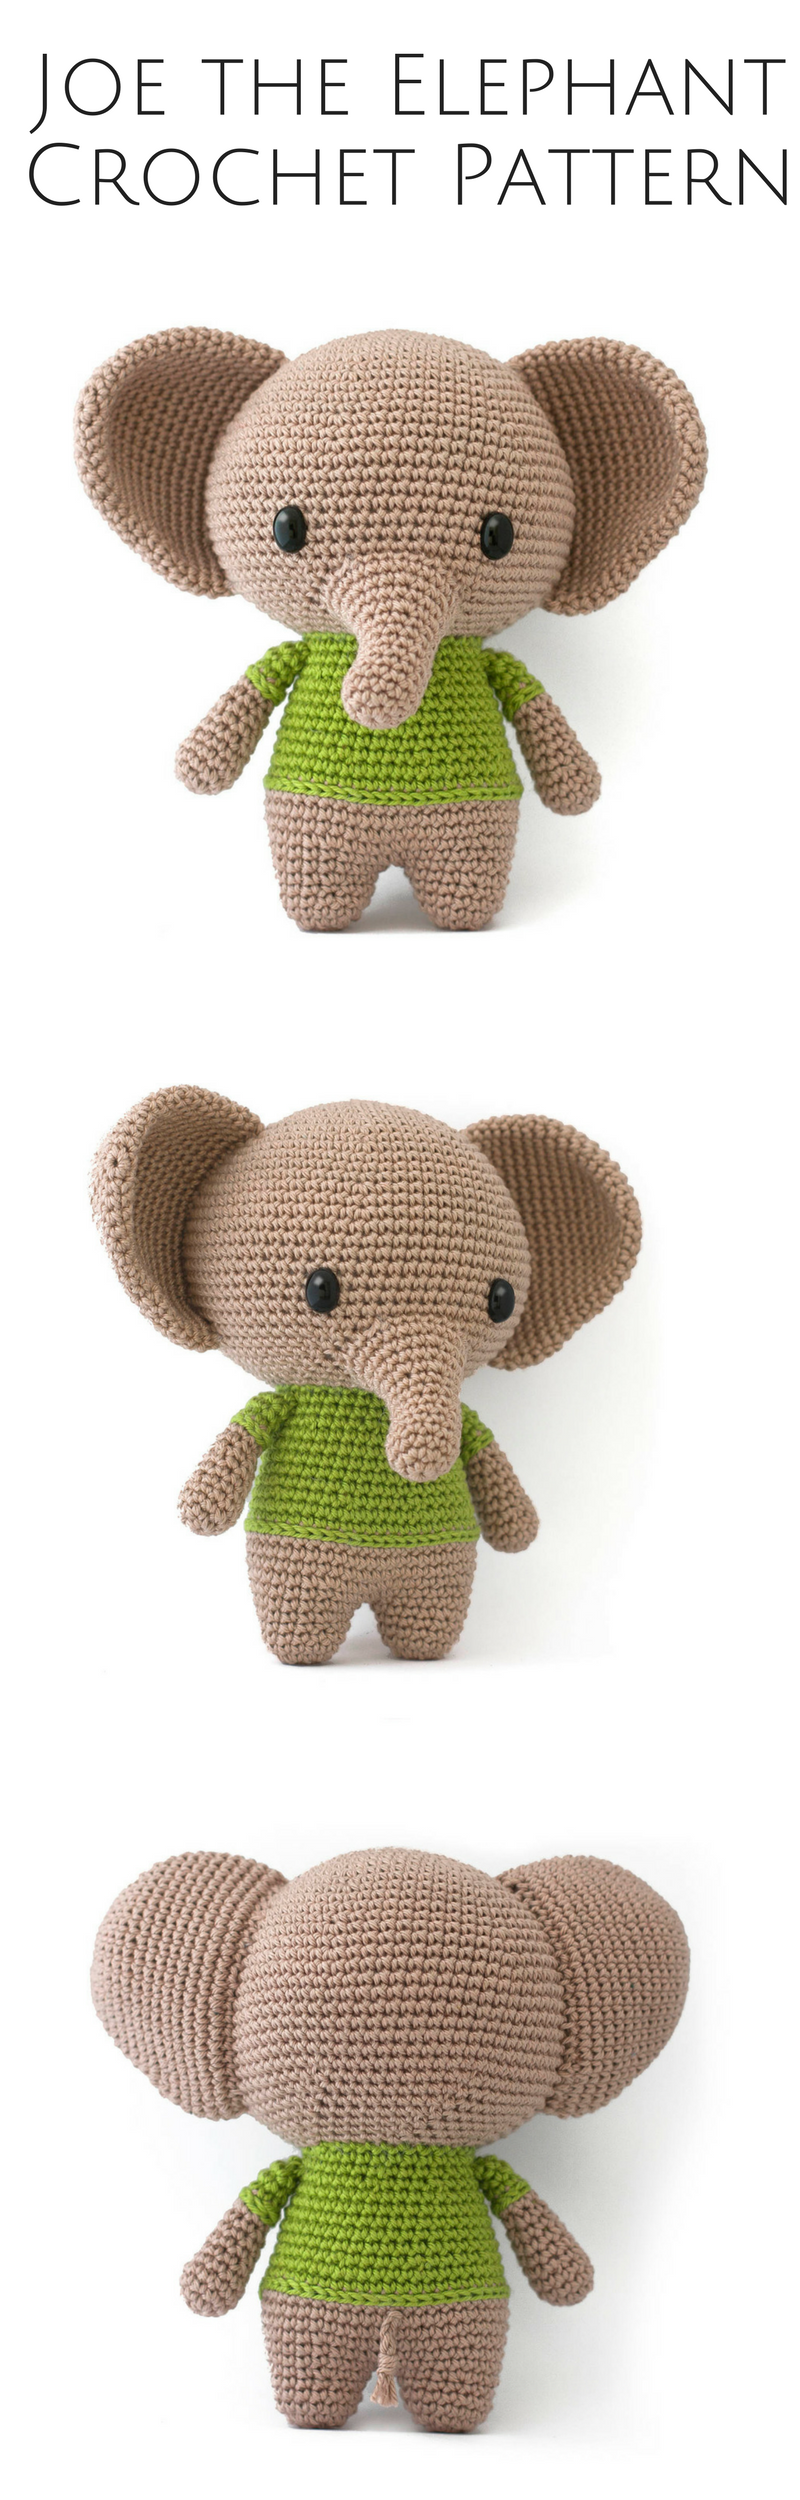 Joe the Elephant amigurumi crochet pattern PDF | Patrones amigurumi ...